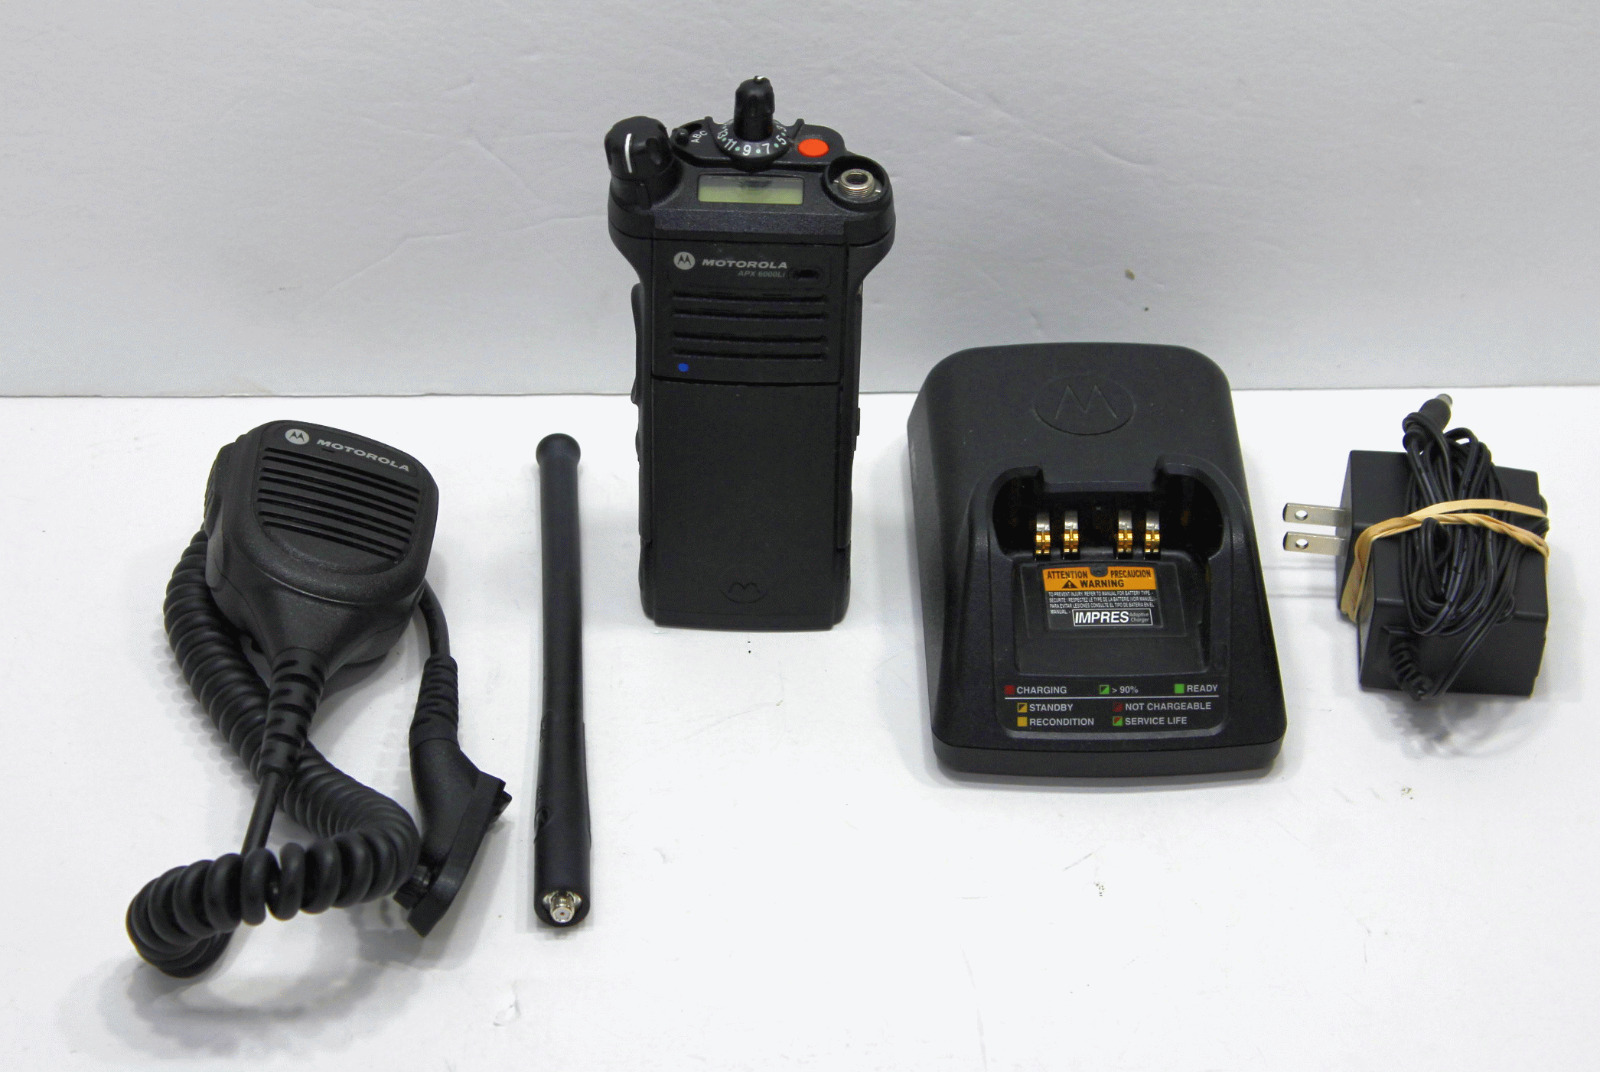 TESTED MOTOROLA APX APX6000 P25 TDMA RADIO 136-174 MHZ VHF MHZ DIGITAL RADIO LOT. Available Now for 1369.99